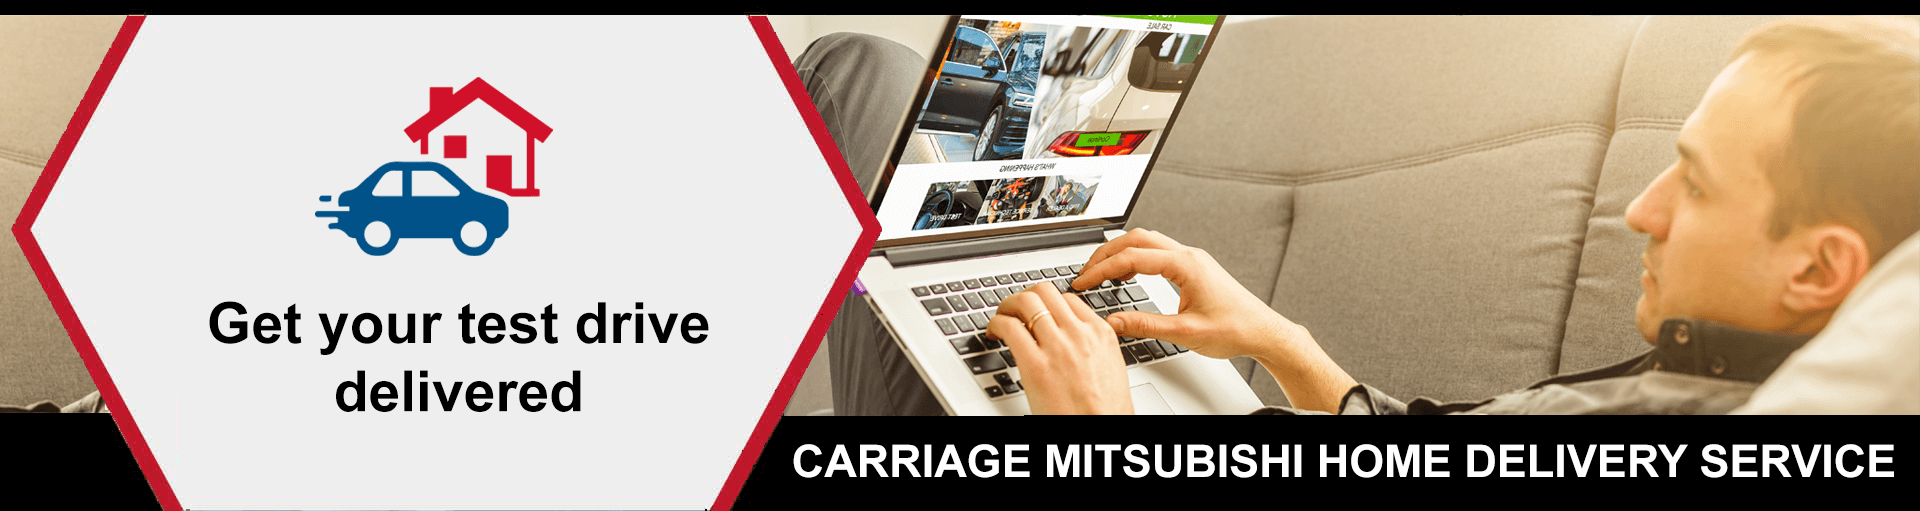 Carriage Mitsubishi Home Delivery